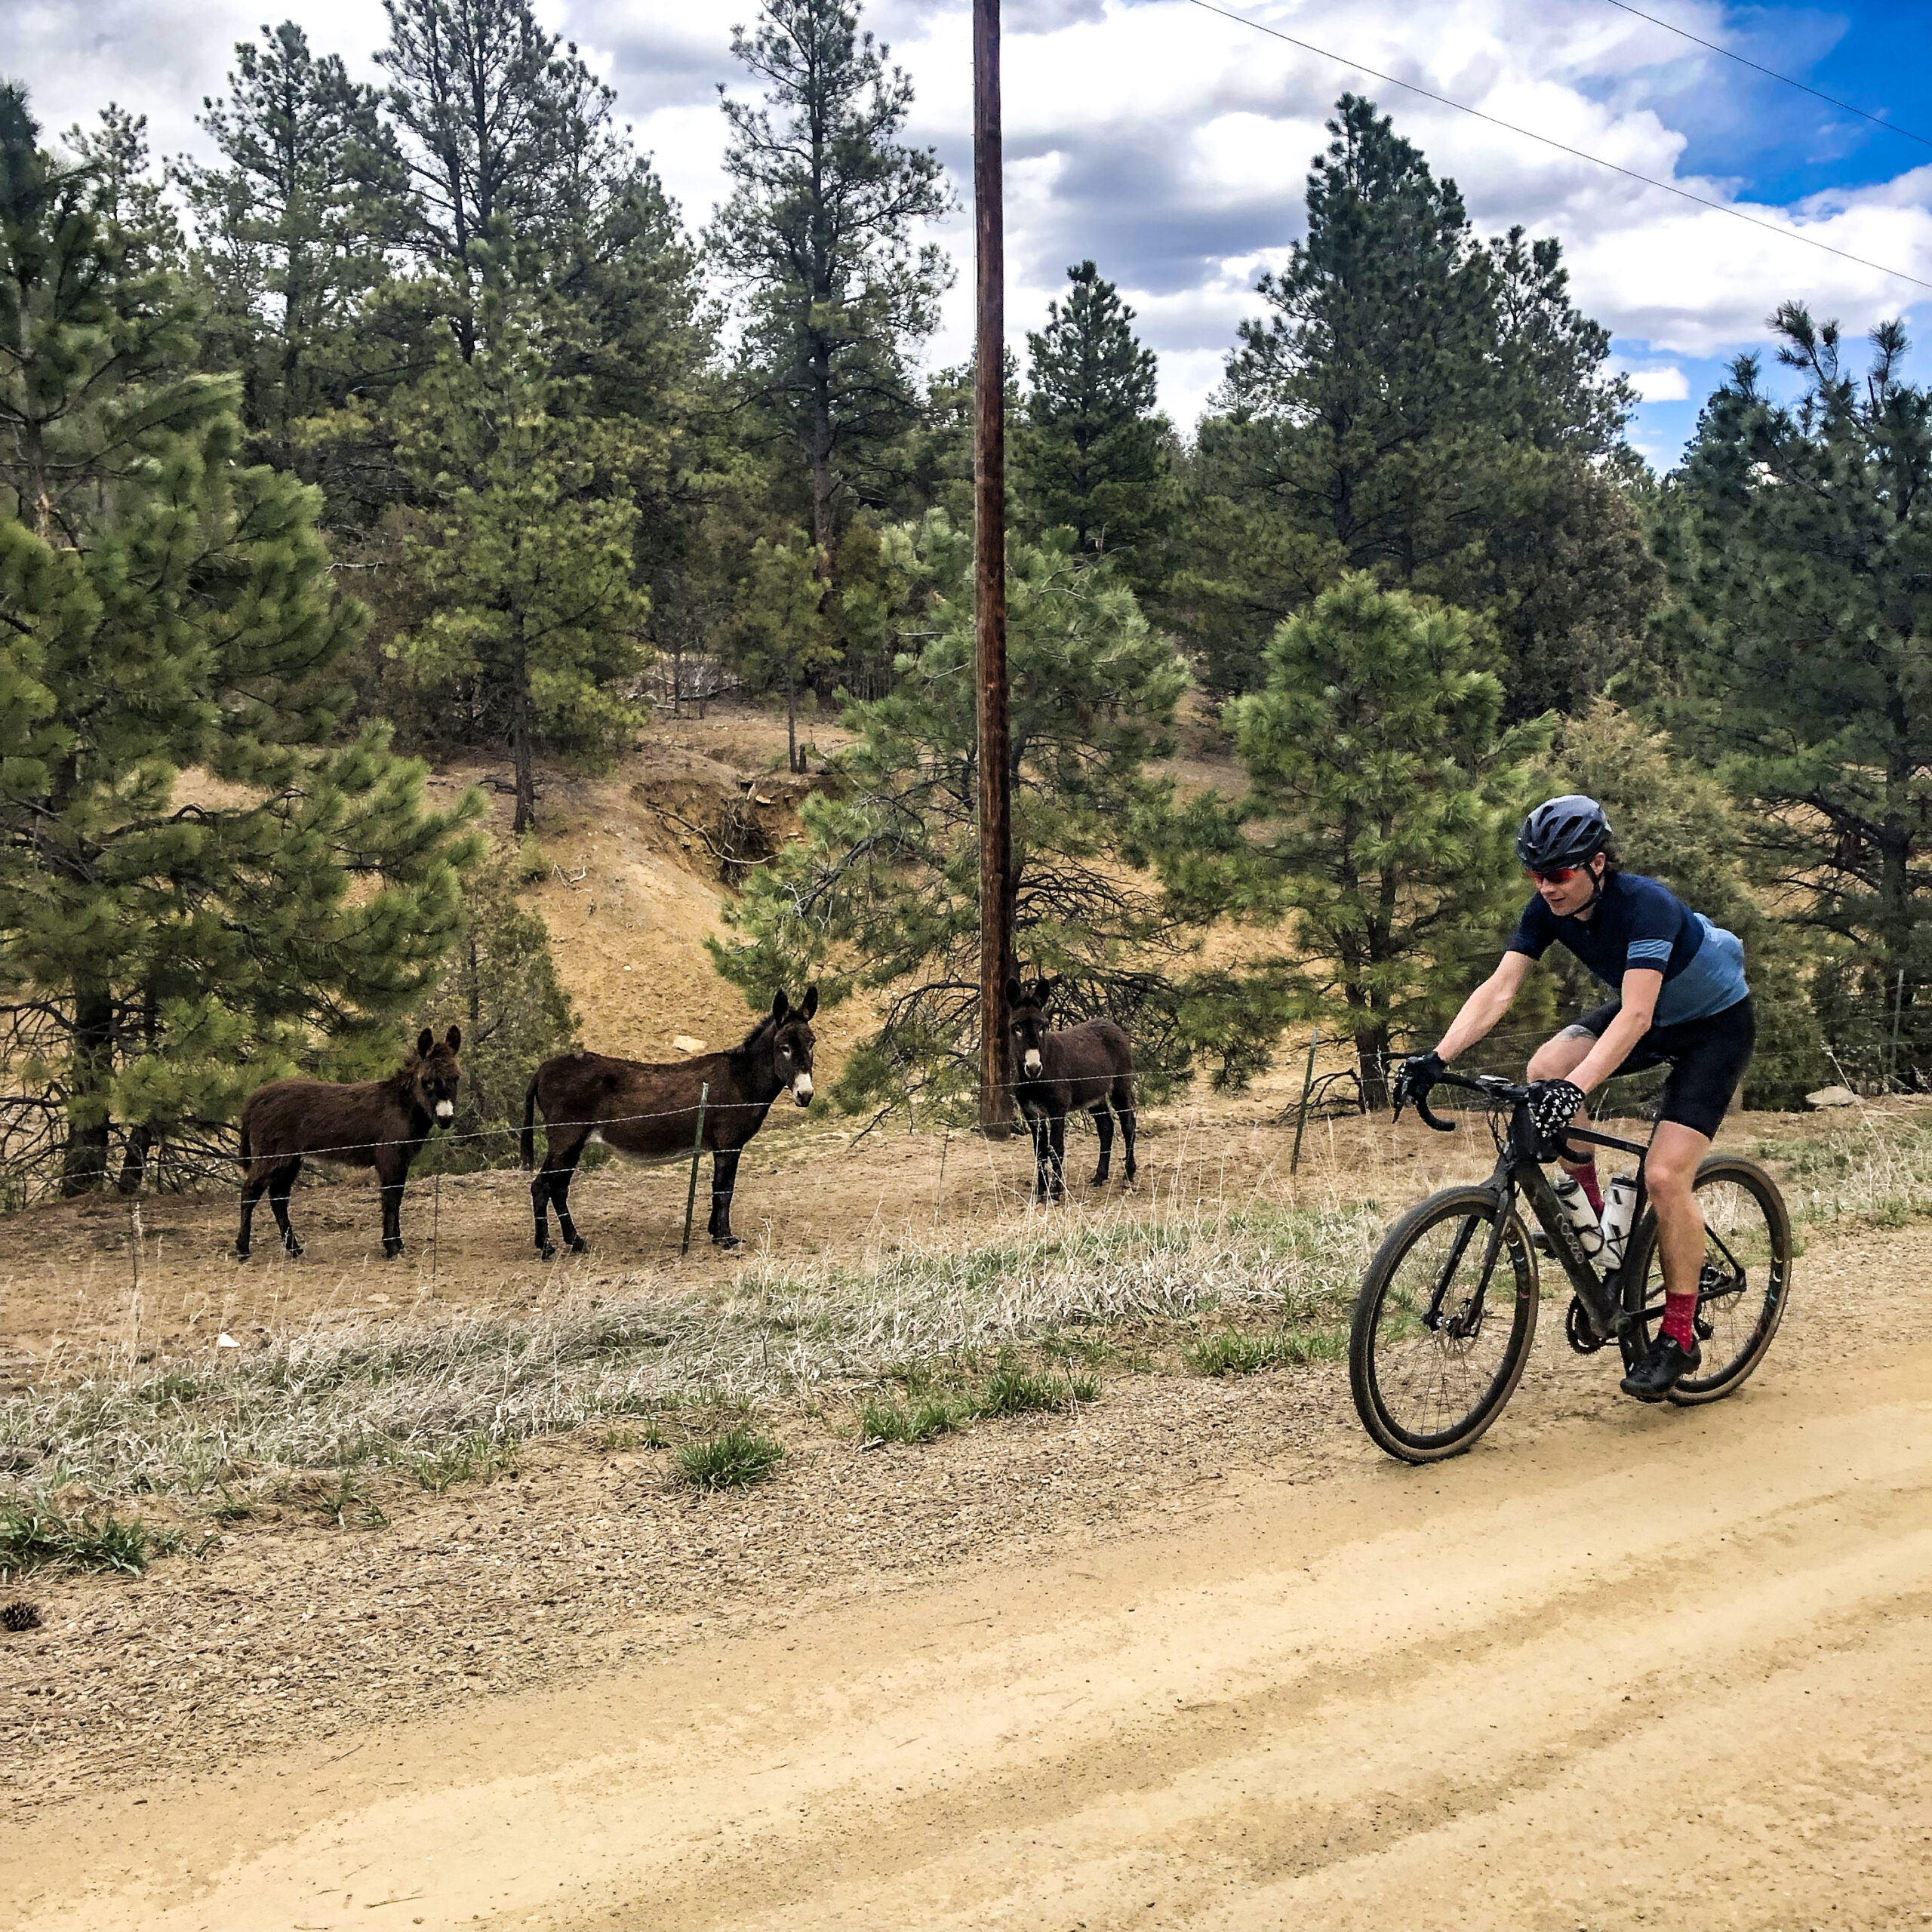 Image of Cyclist riding past donkeys